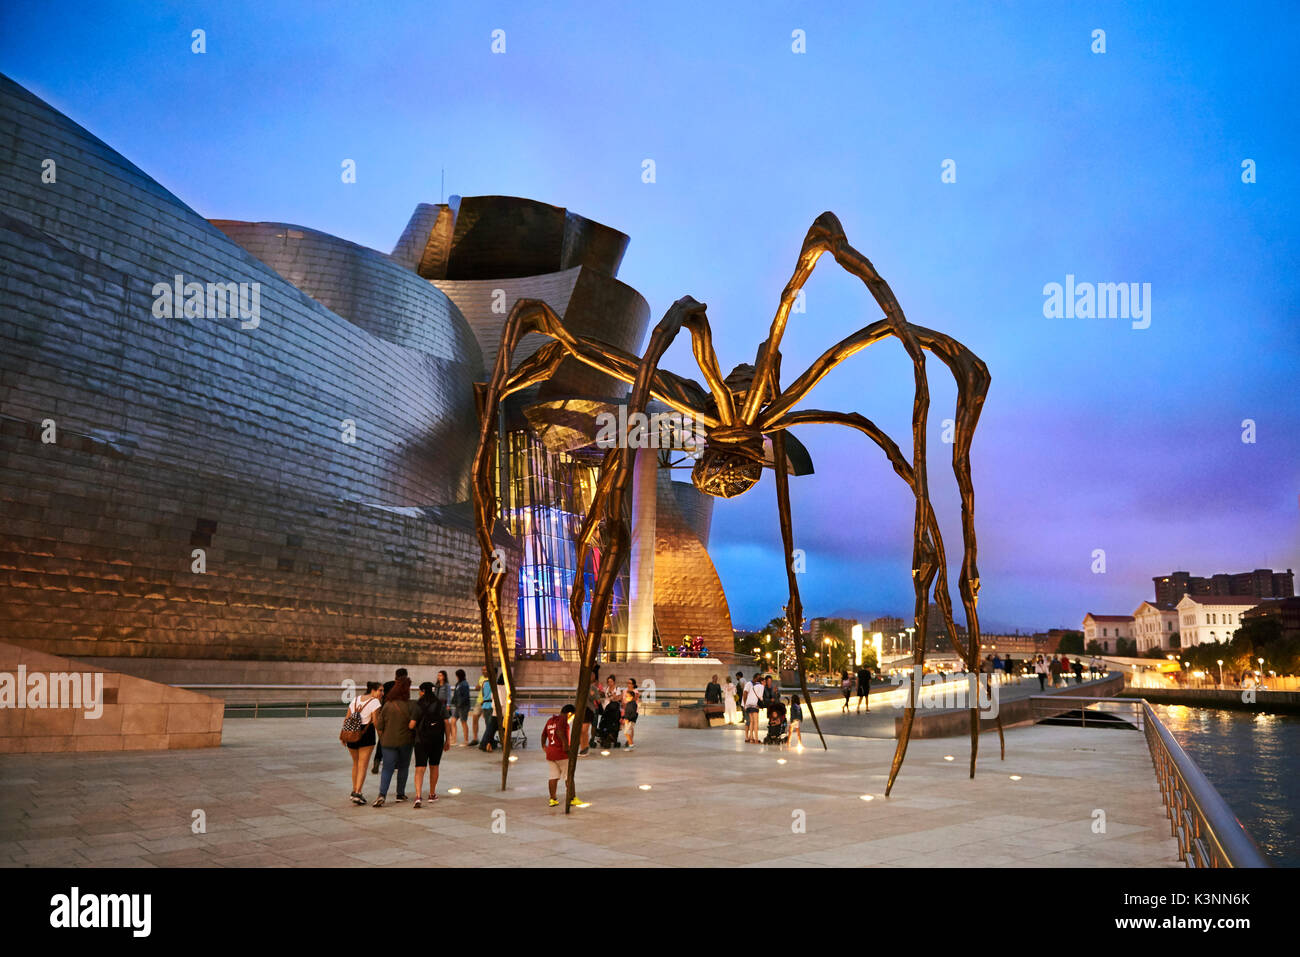 Guggenheim Museum at Evening, Bilbao, Biscay, Basque Country, Spain, Europe Stock Photo